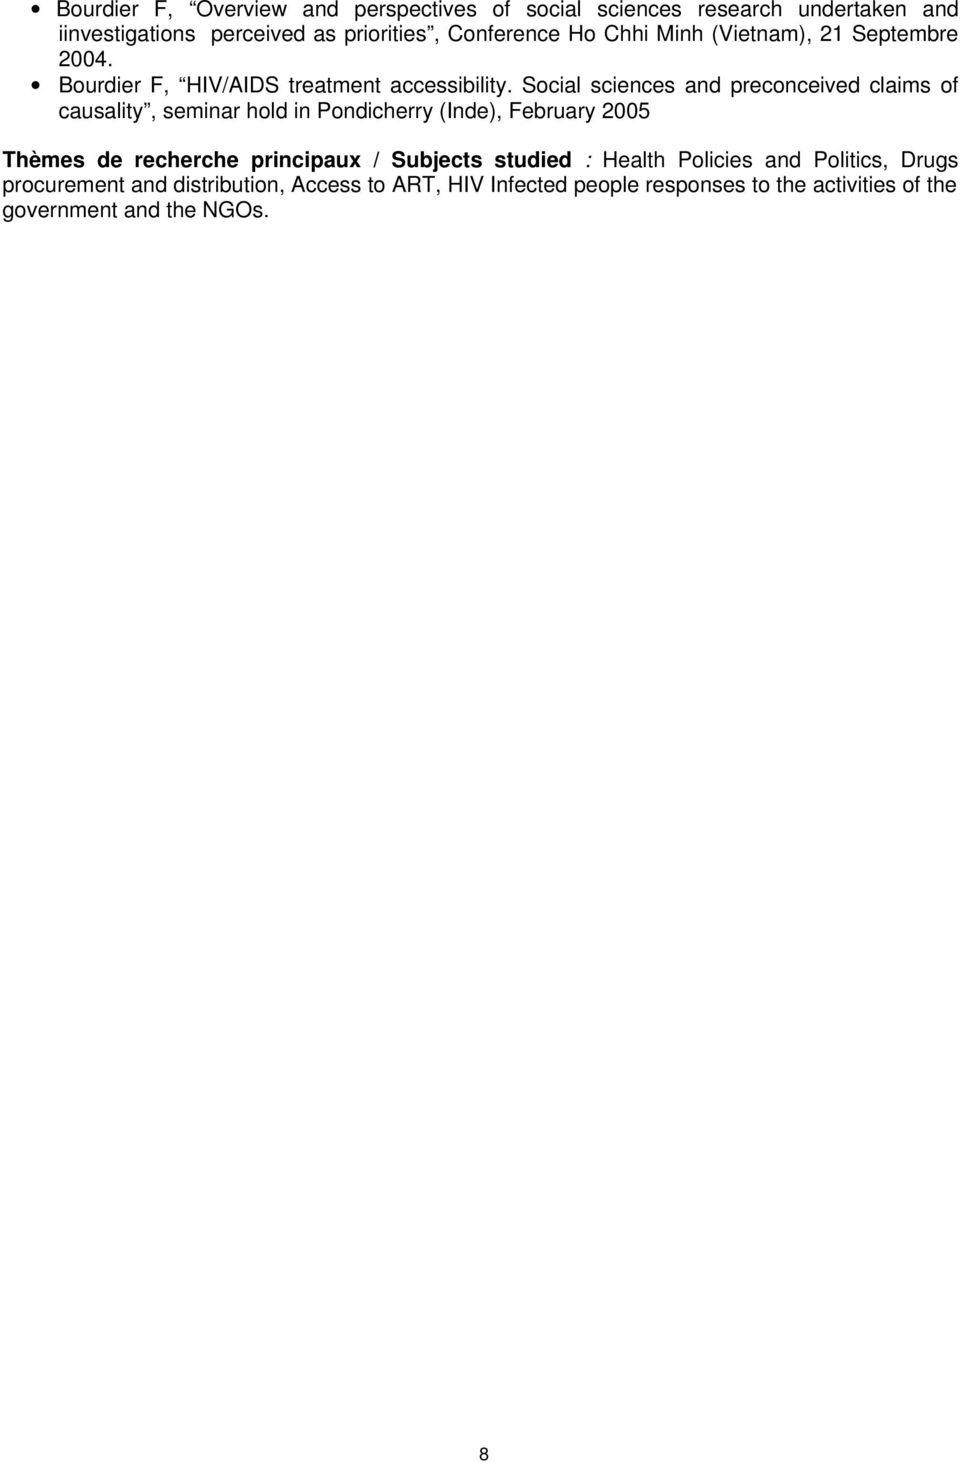 Social sciences and preconceived claims of causality, seminar hold in Pondicherry (Inde), February 2005 Thèmes de recherche principaux